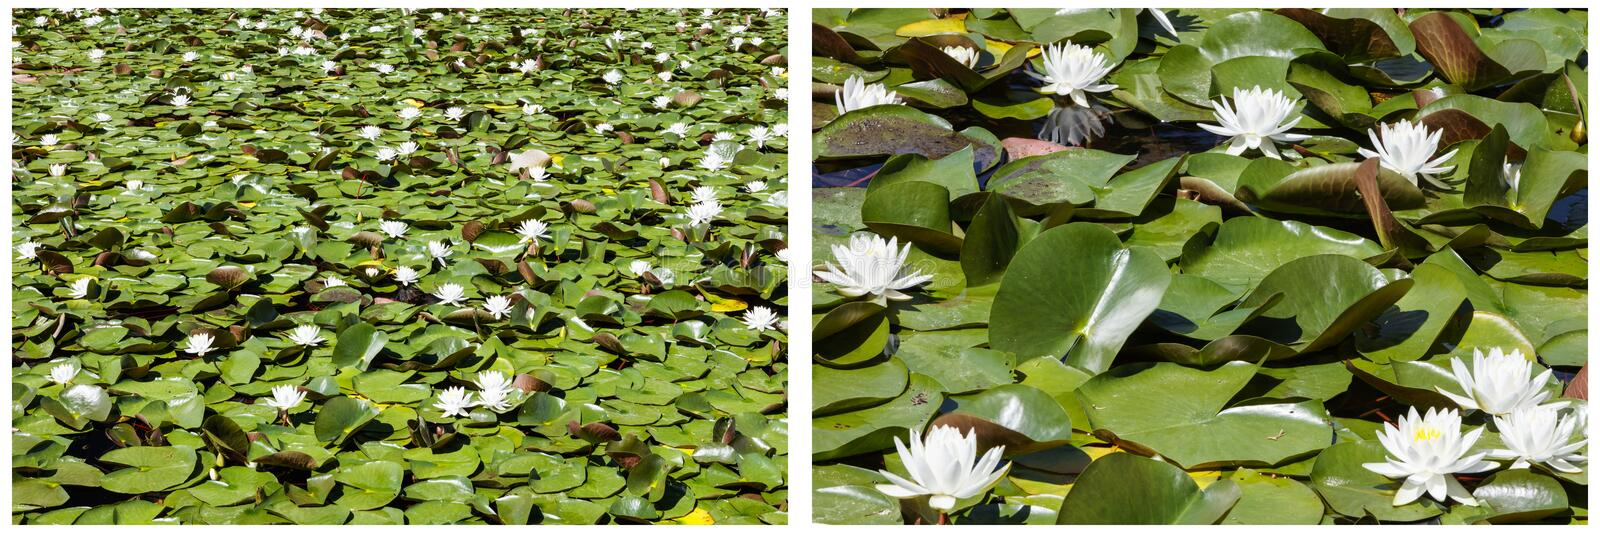 Lily pads blossom white water collage royalty free stock photography